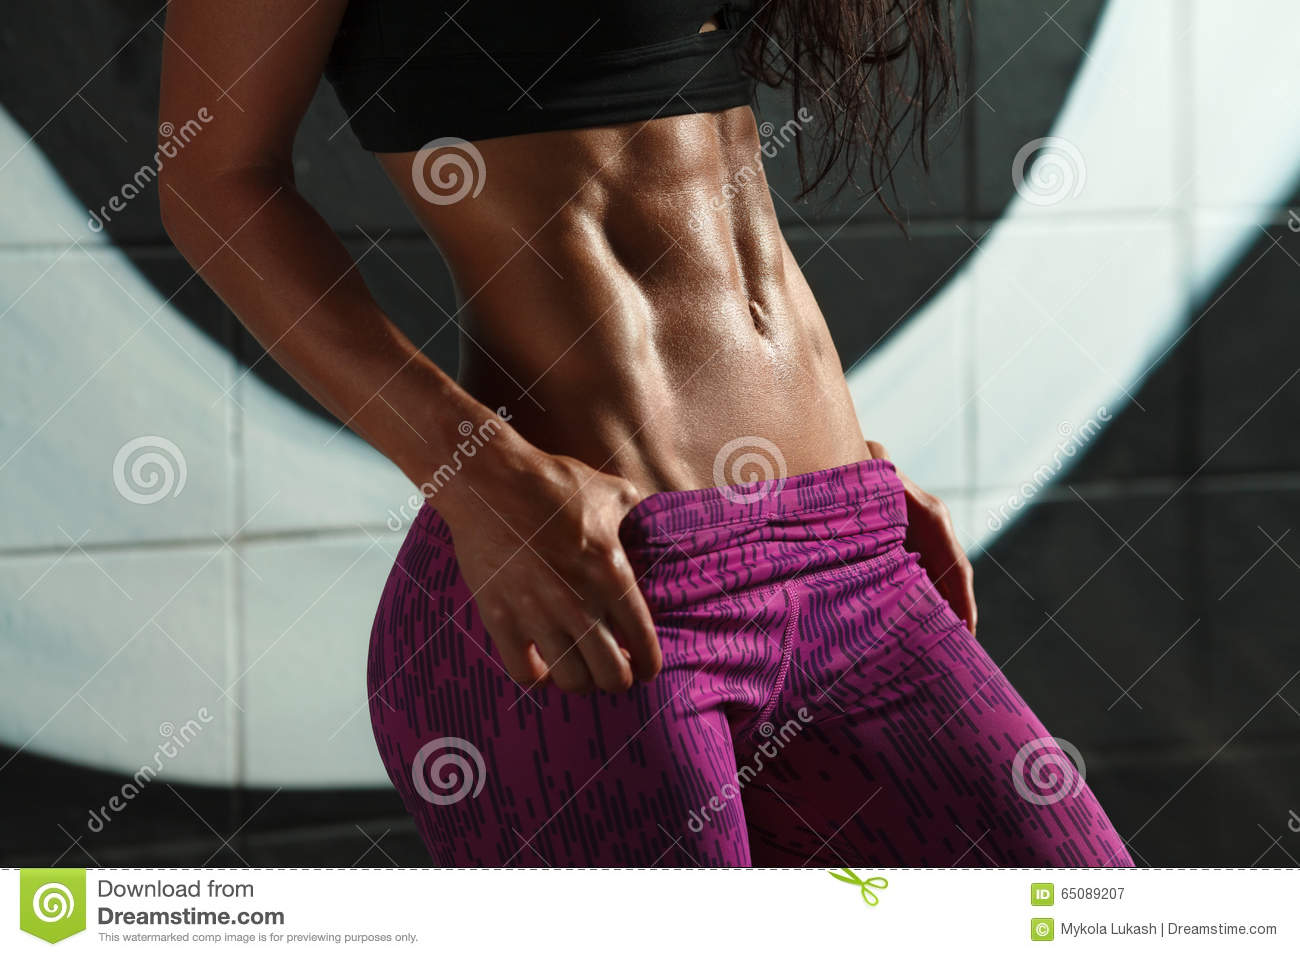 Fitness Sexy Woman Showing Abs And Flat Belly Beautiful Muscular Girl, Shaped -2311